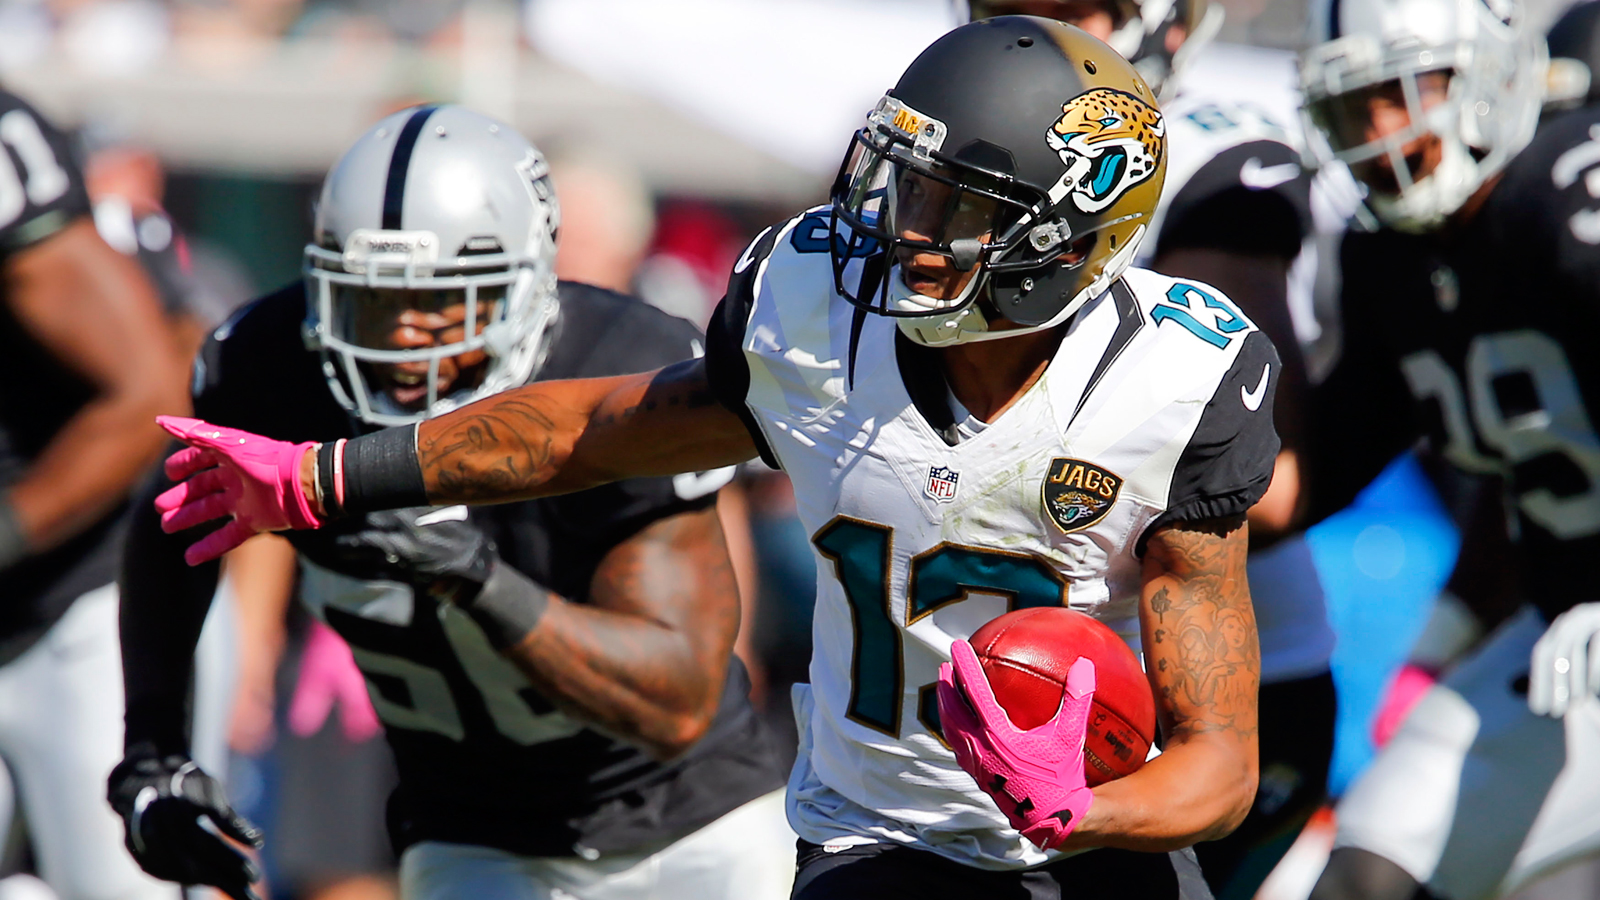 Jaguars place WR Rashad Green on IR with Achilles injury